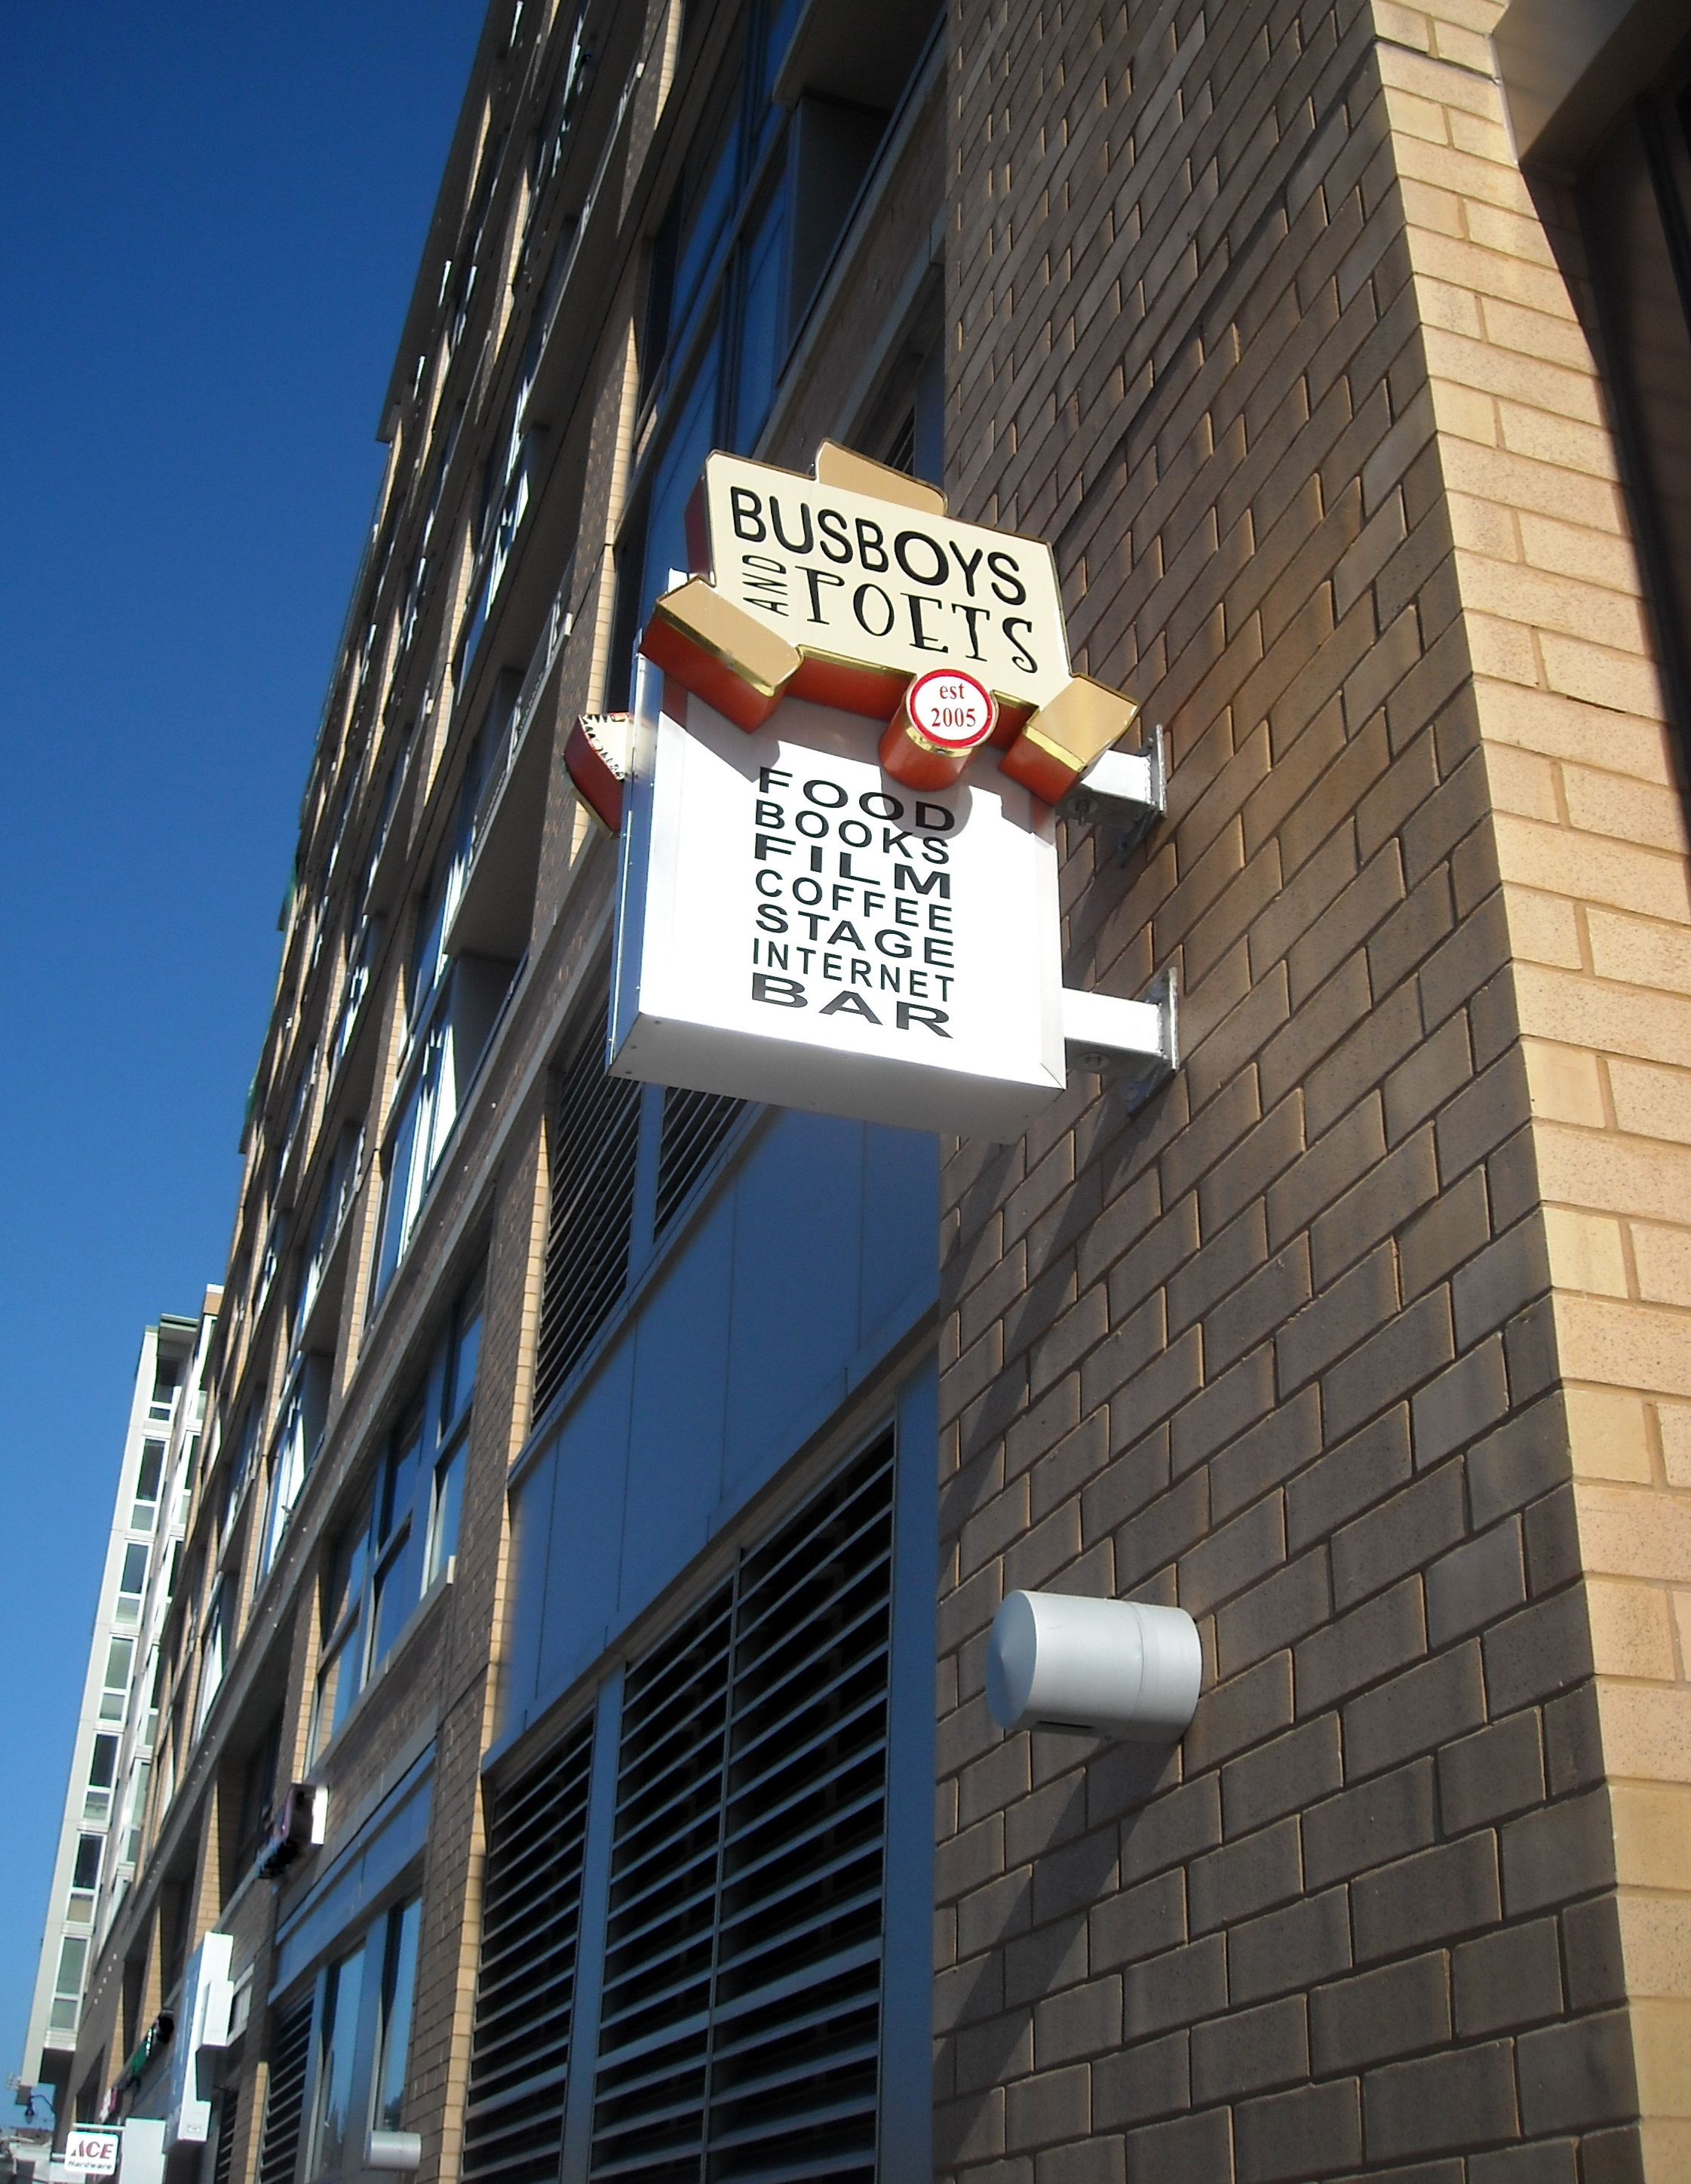 Busboys_and_Poets_-_entrance_sign.jpg